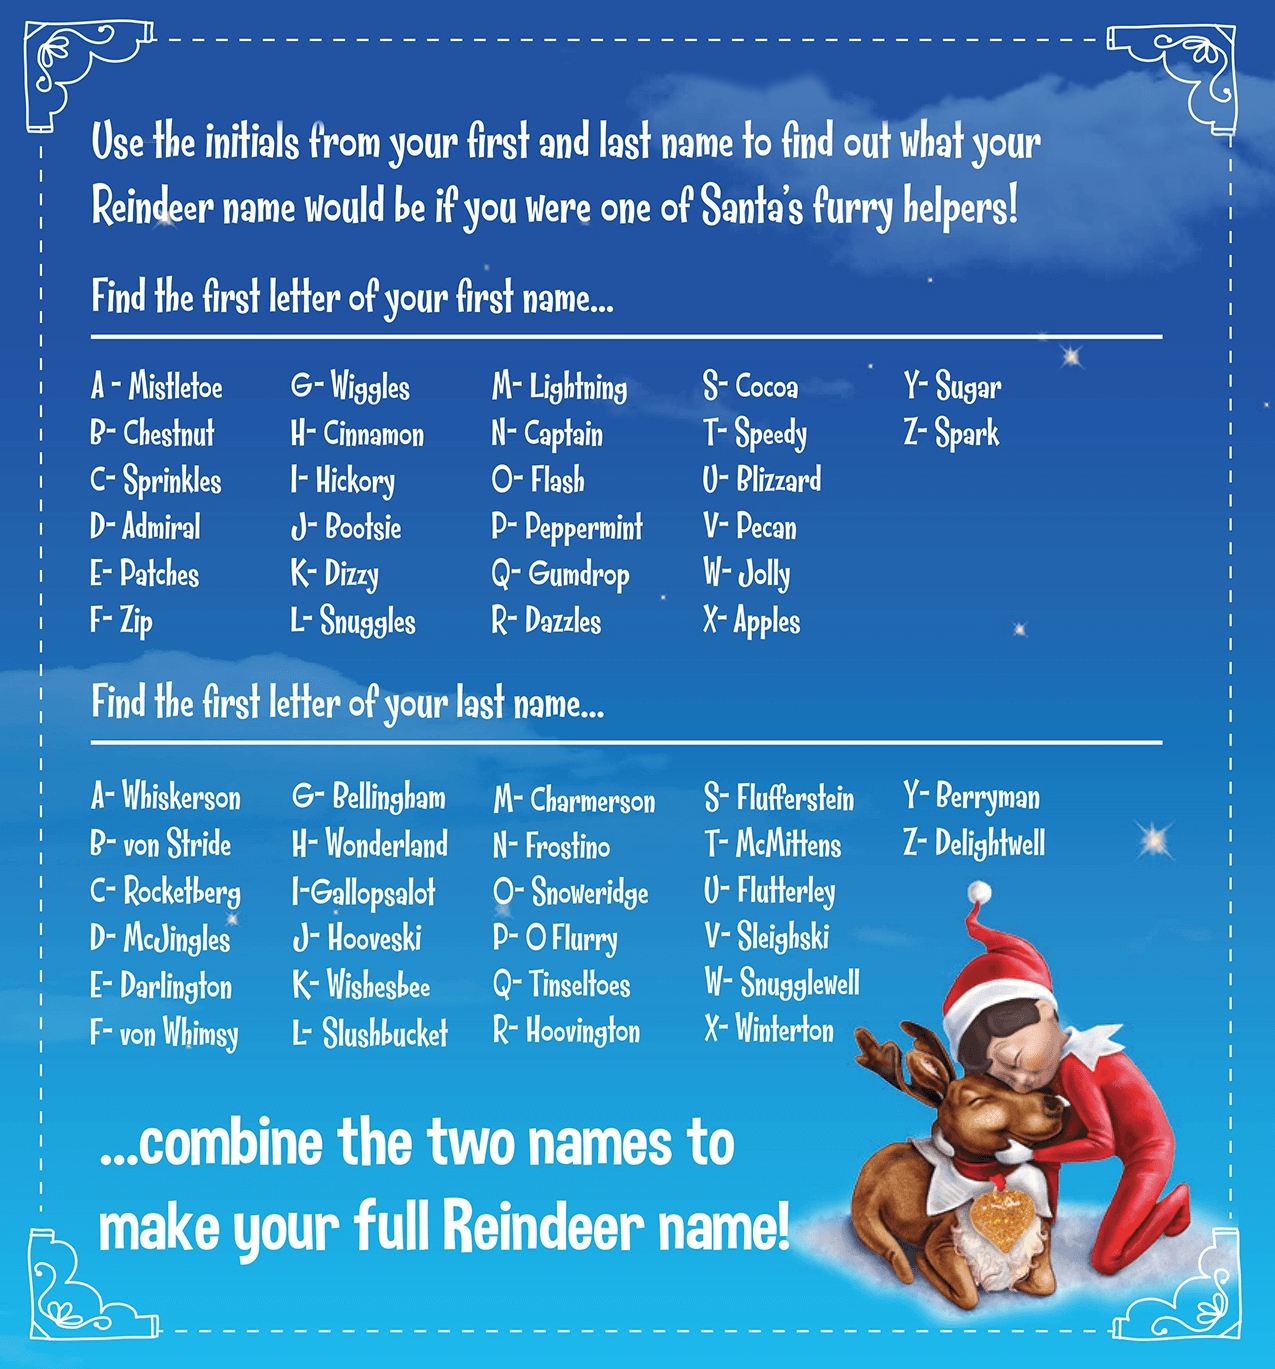 10 Elegant Elf On The Shelf Names Ideas if you were a reindeer what would your name be elf pets shelf 1